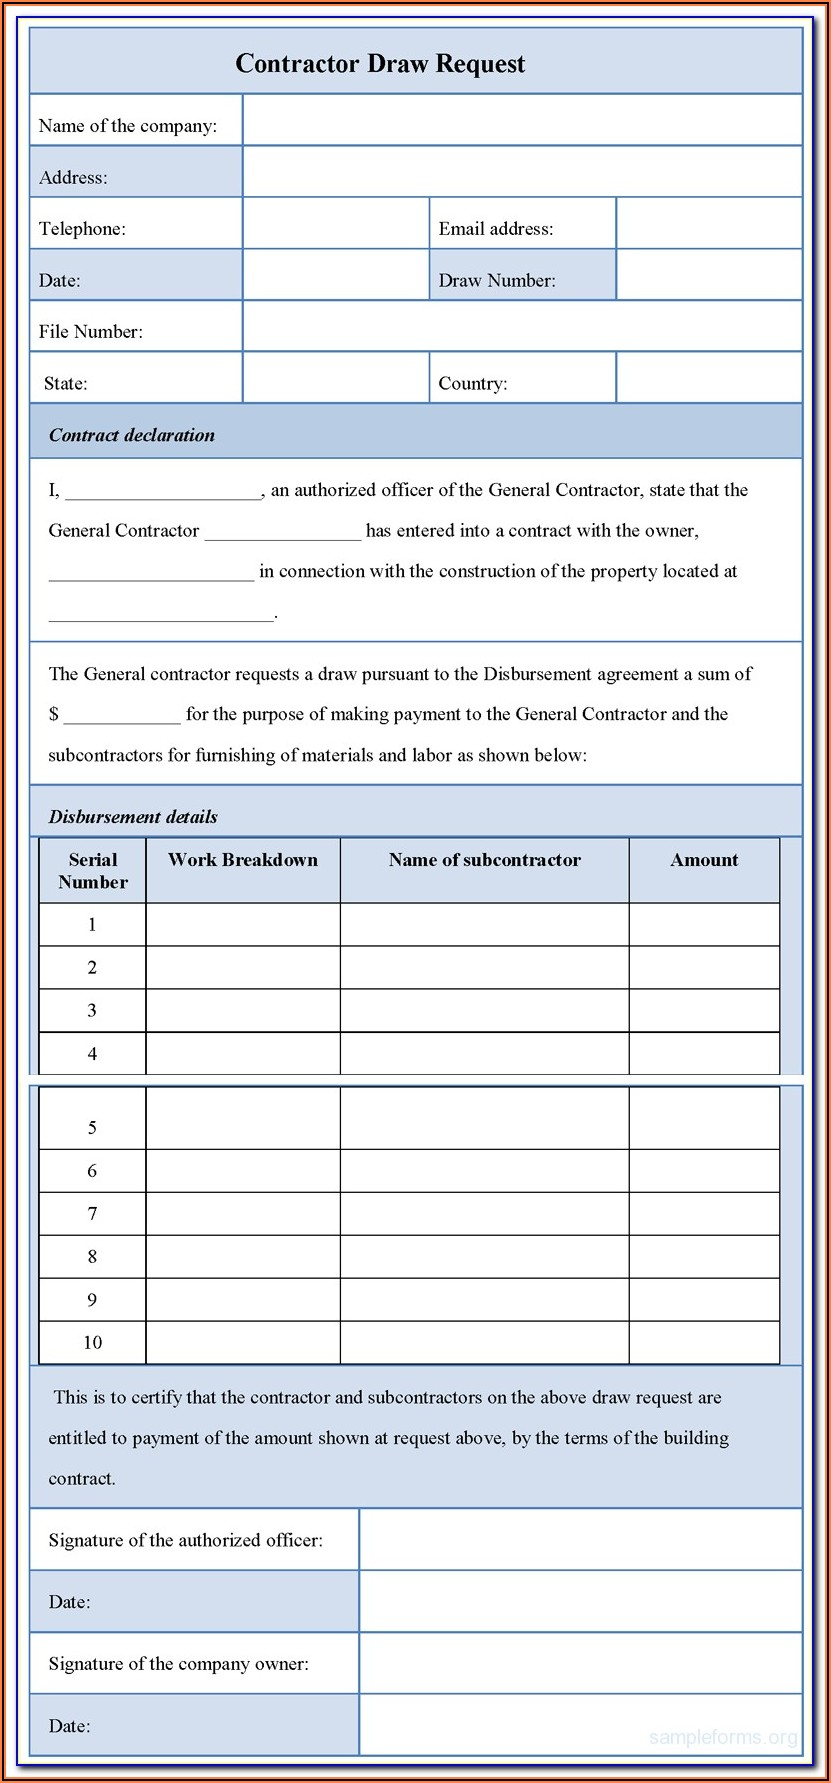 Construction Draw Request Form Template